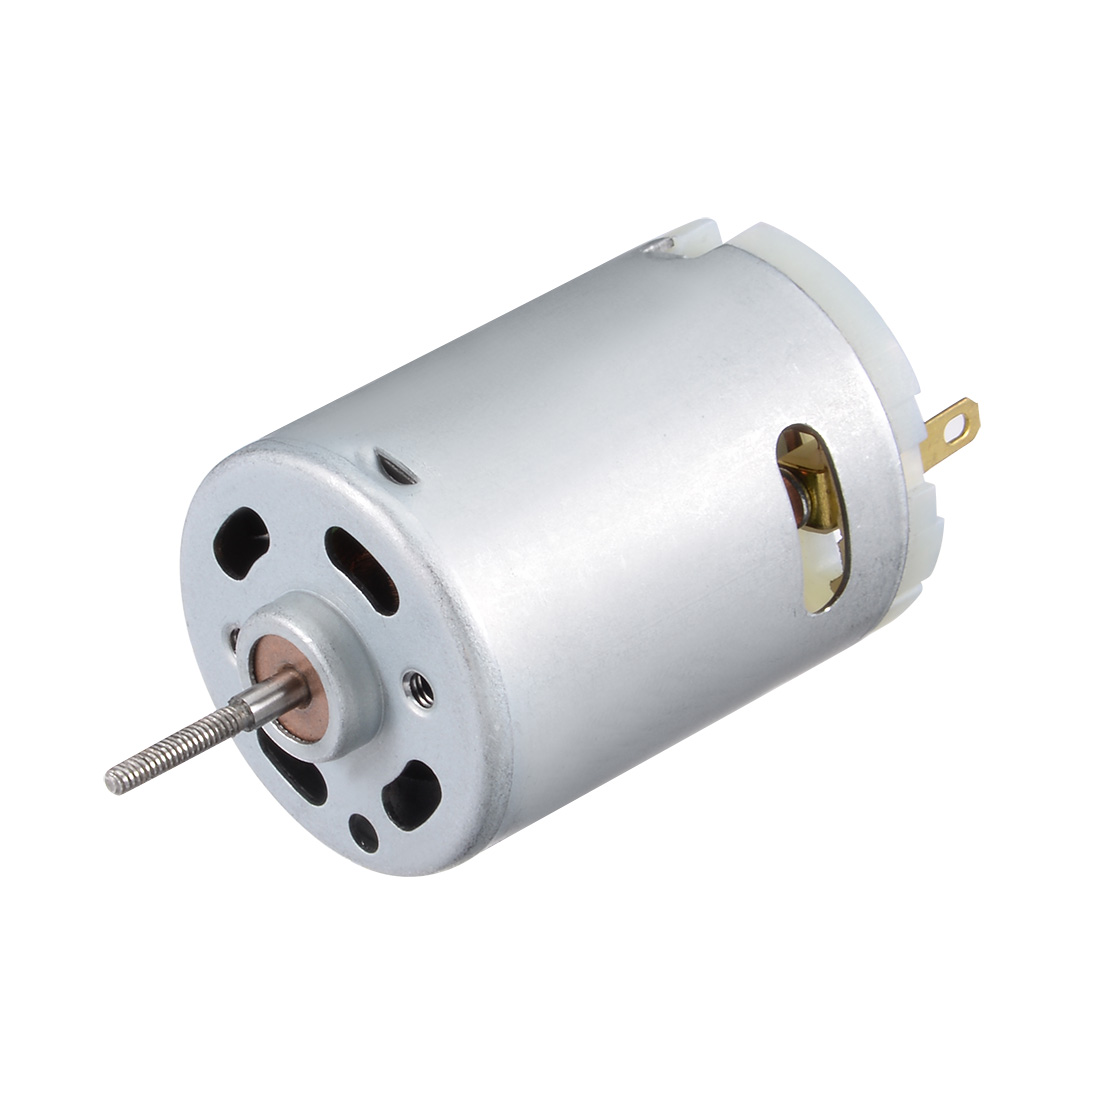 Small Motor DC 24V 5500RPM High Speed Motor for DIY Hobby Toy Car Remote Control